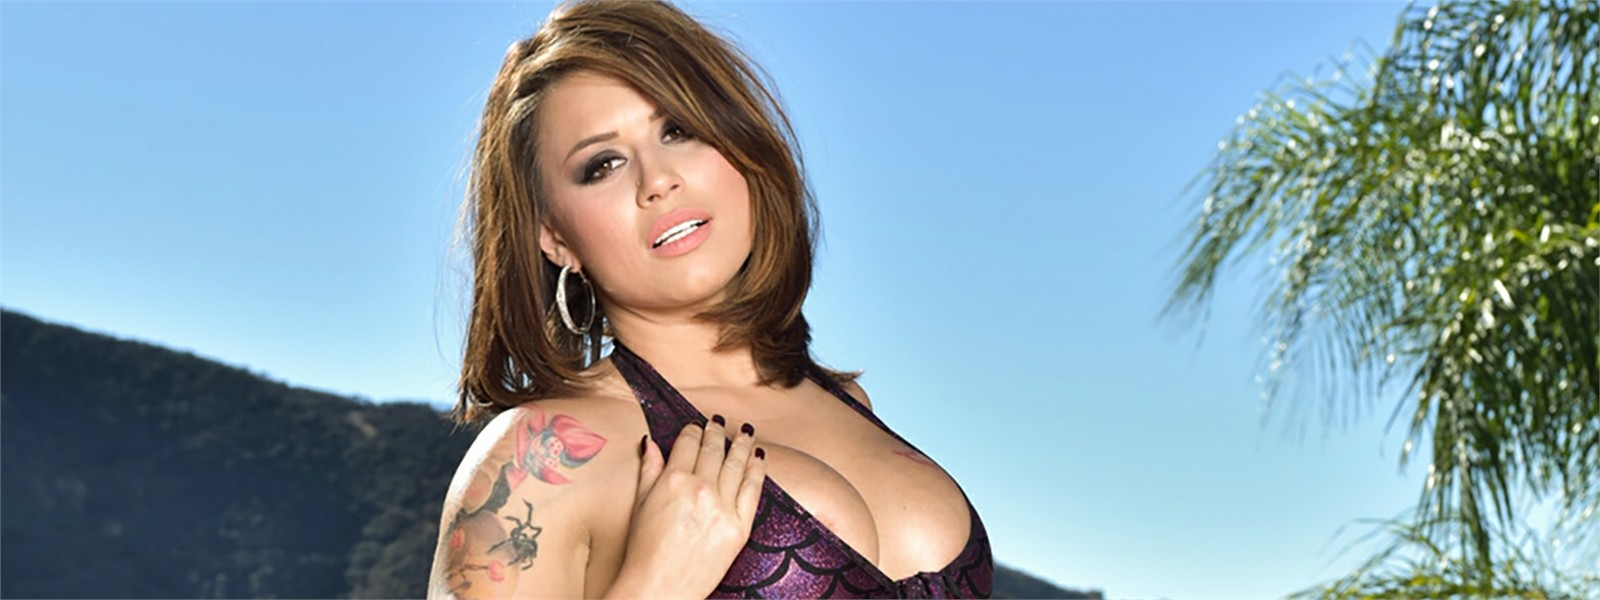 Watch scenes from Eva Angelina.